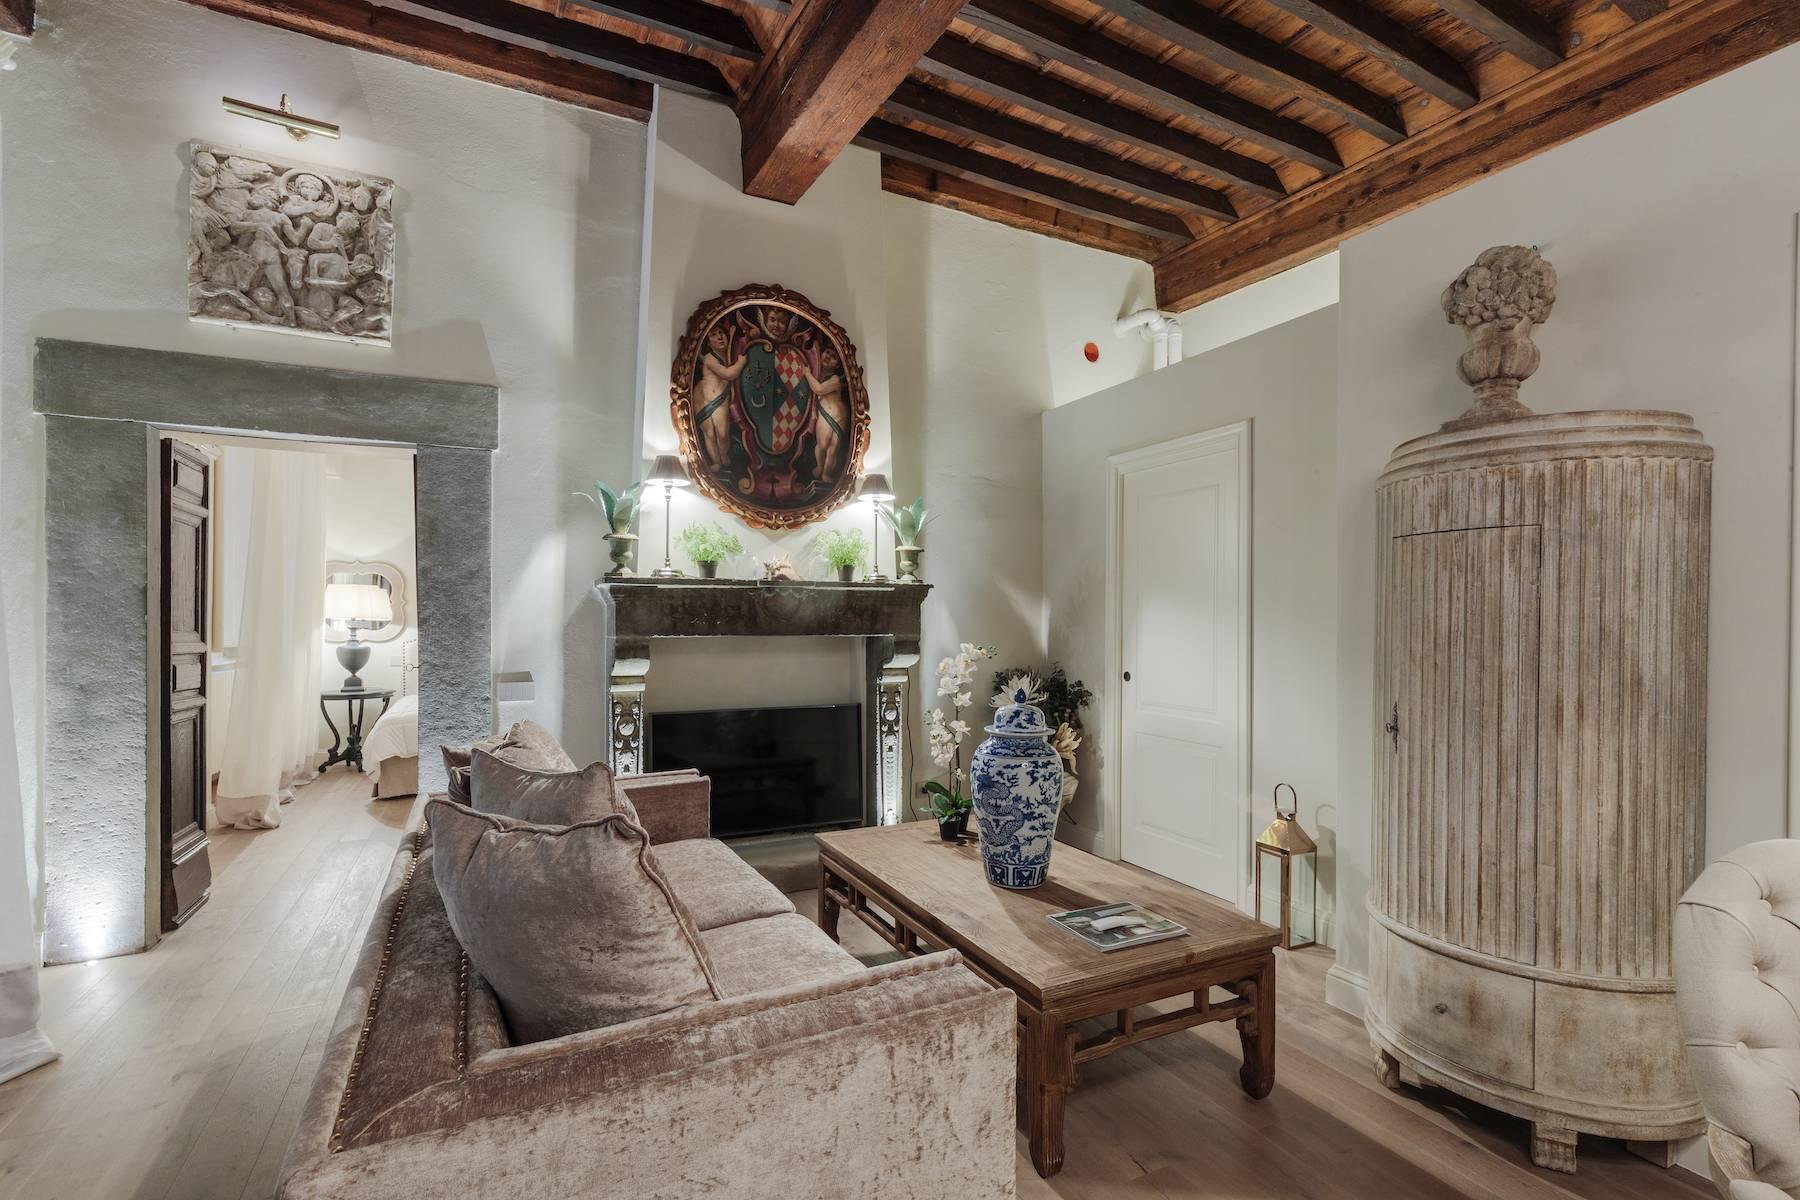 Appartement enchanteur au coeur de Lucca - 15